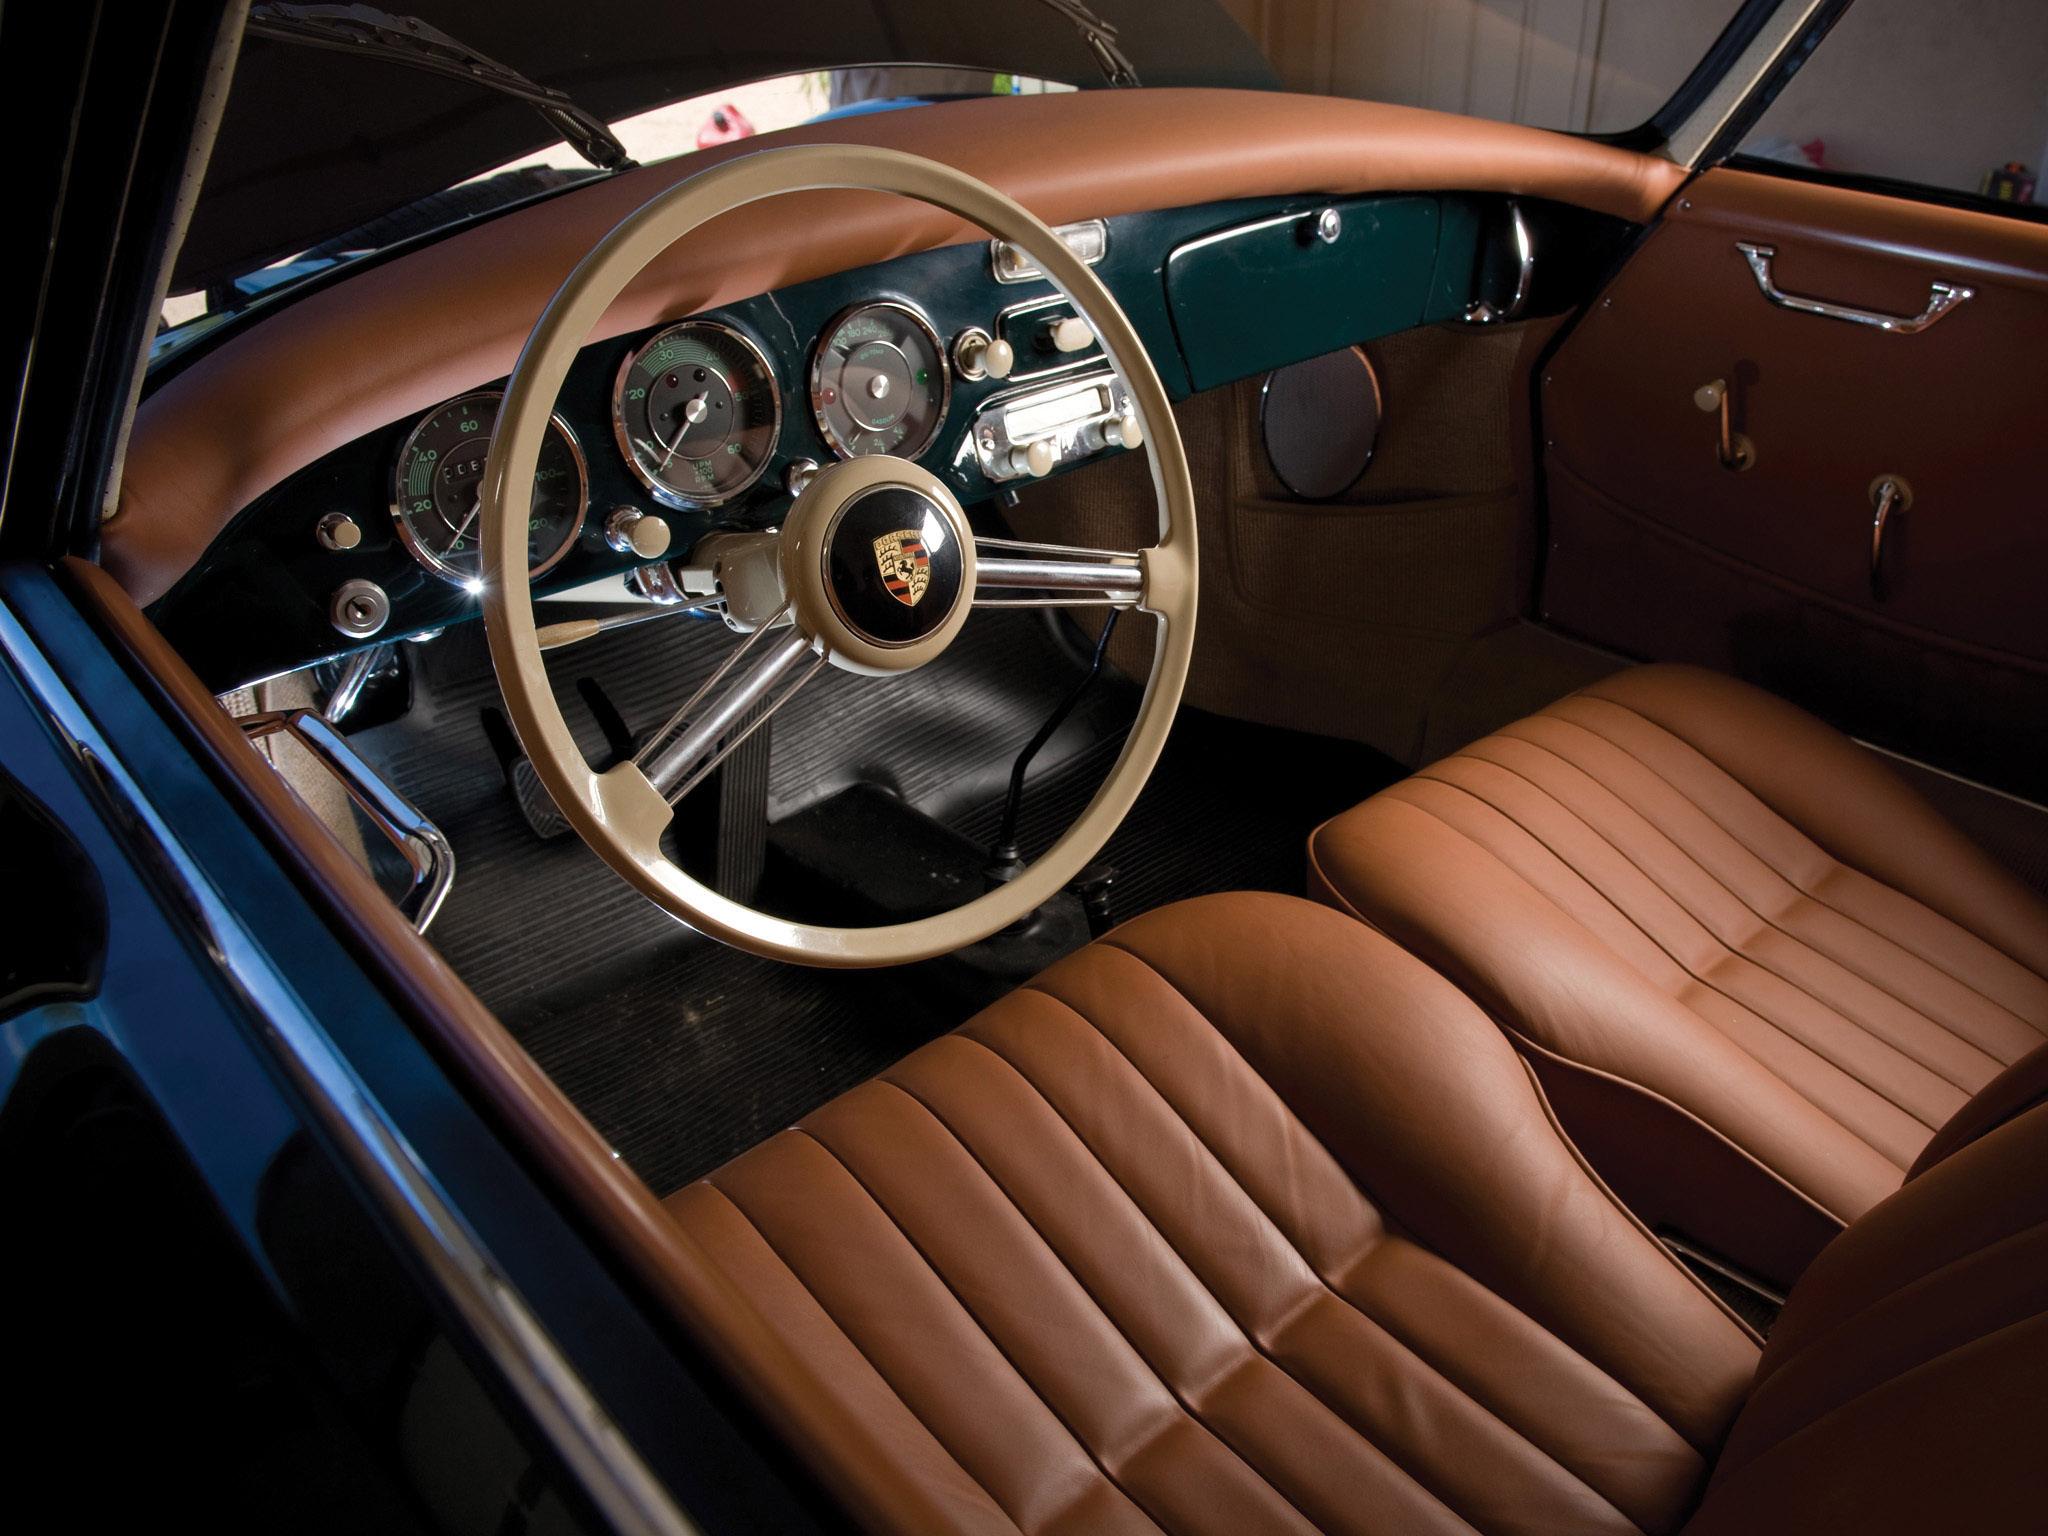 1955 Porsche 356 A Coupe Retro Interior Wallpaper